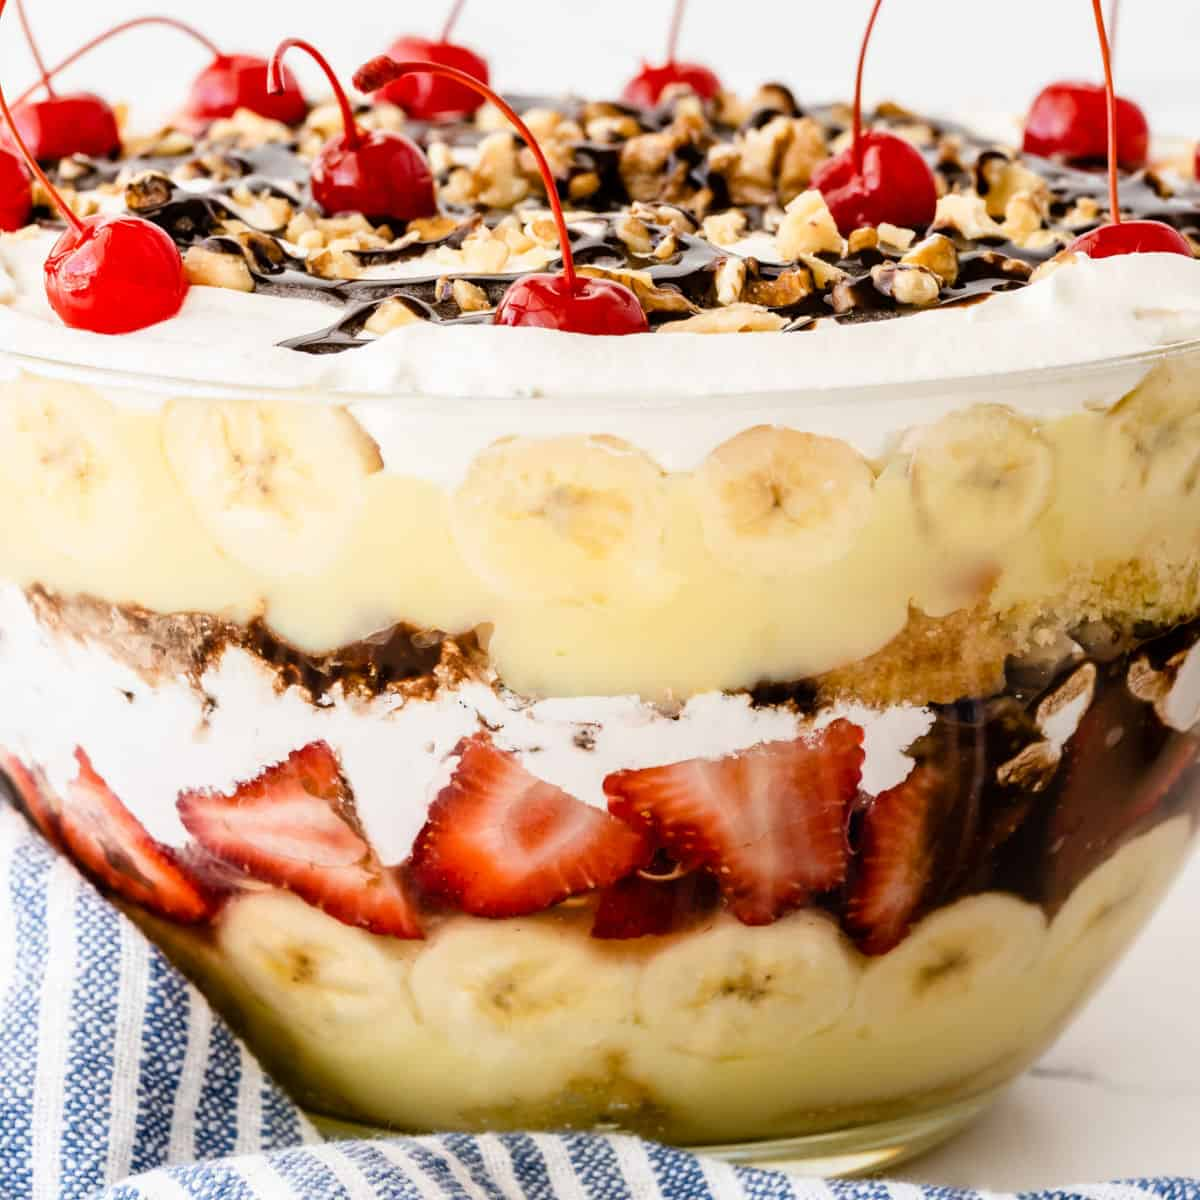 square image of side view of banana split trifle to show all the layers